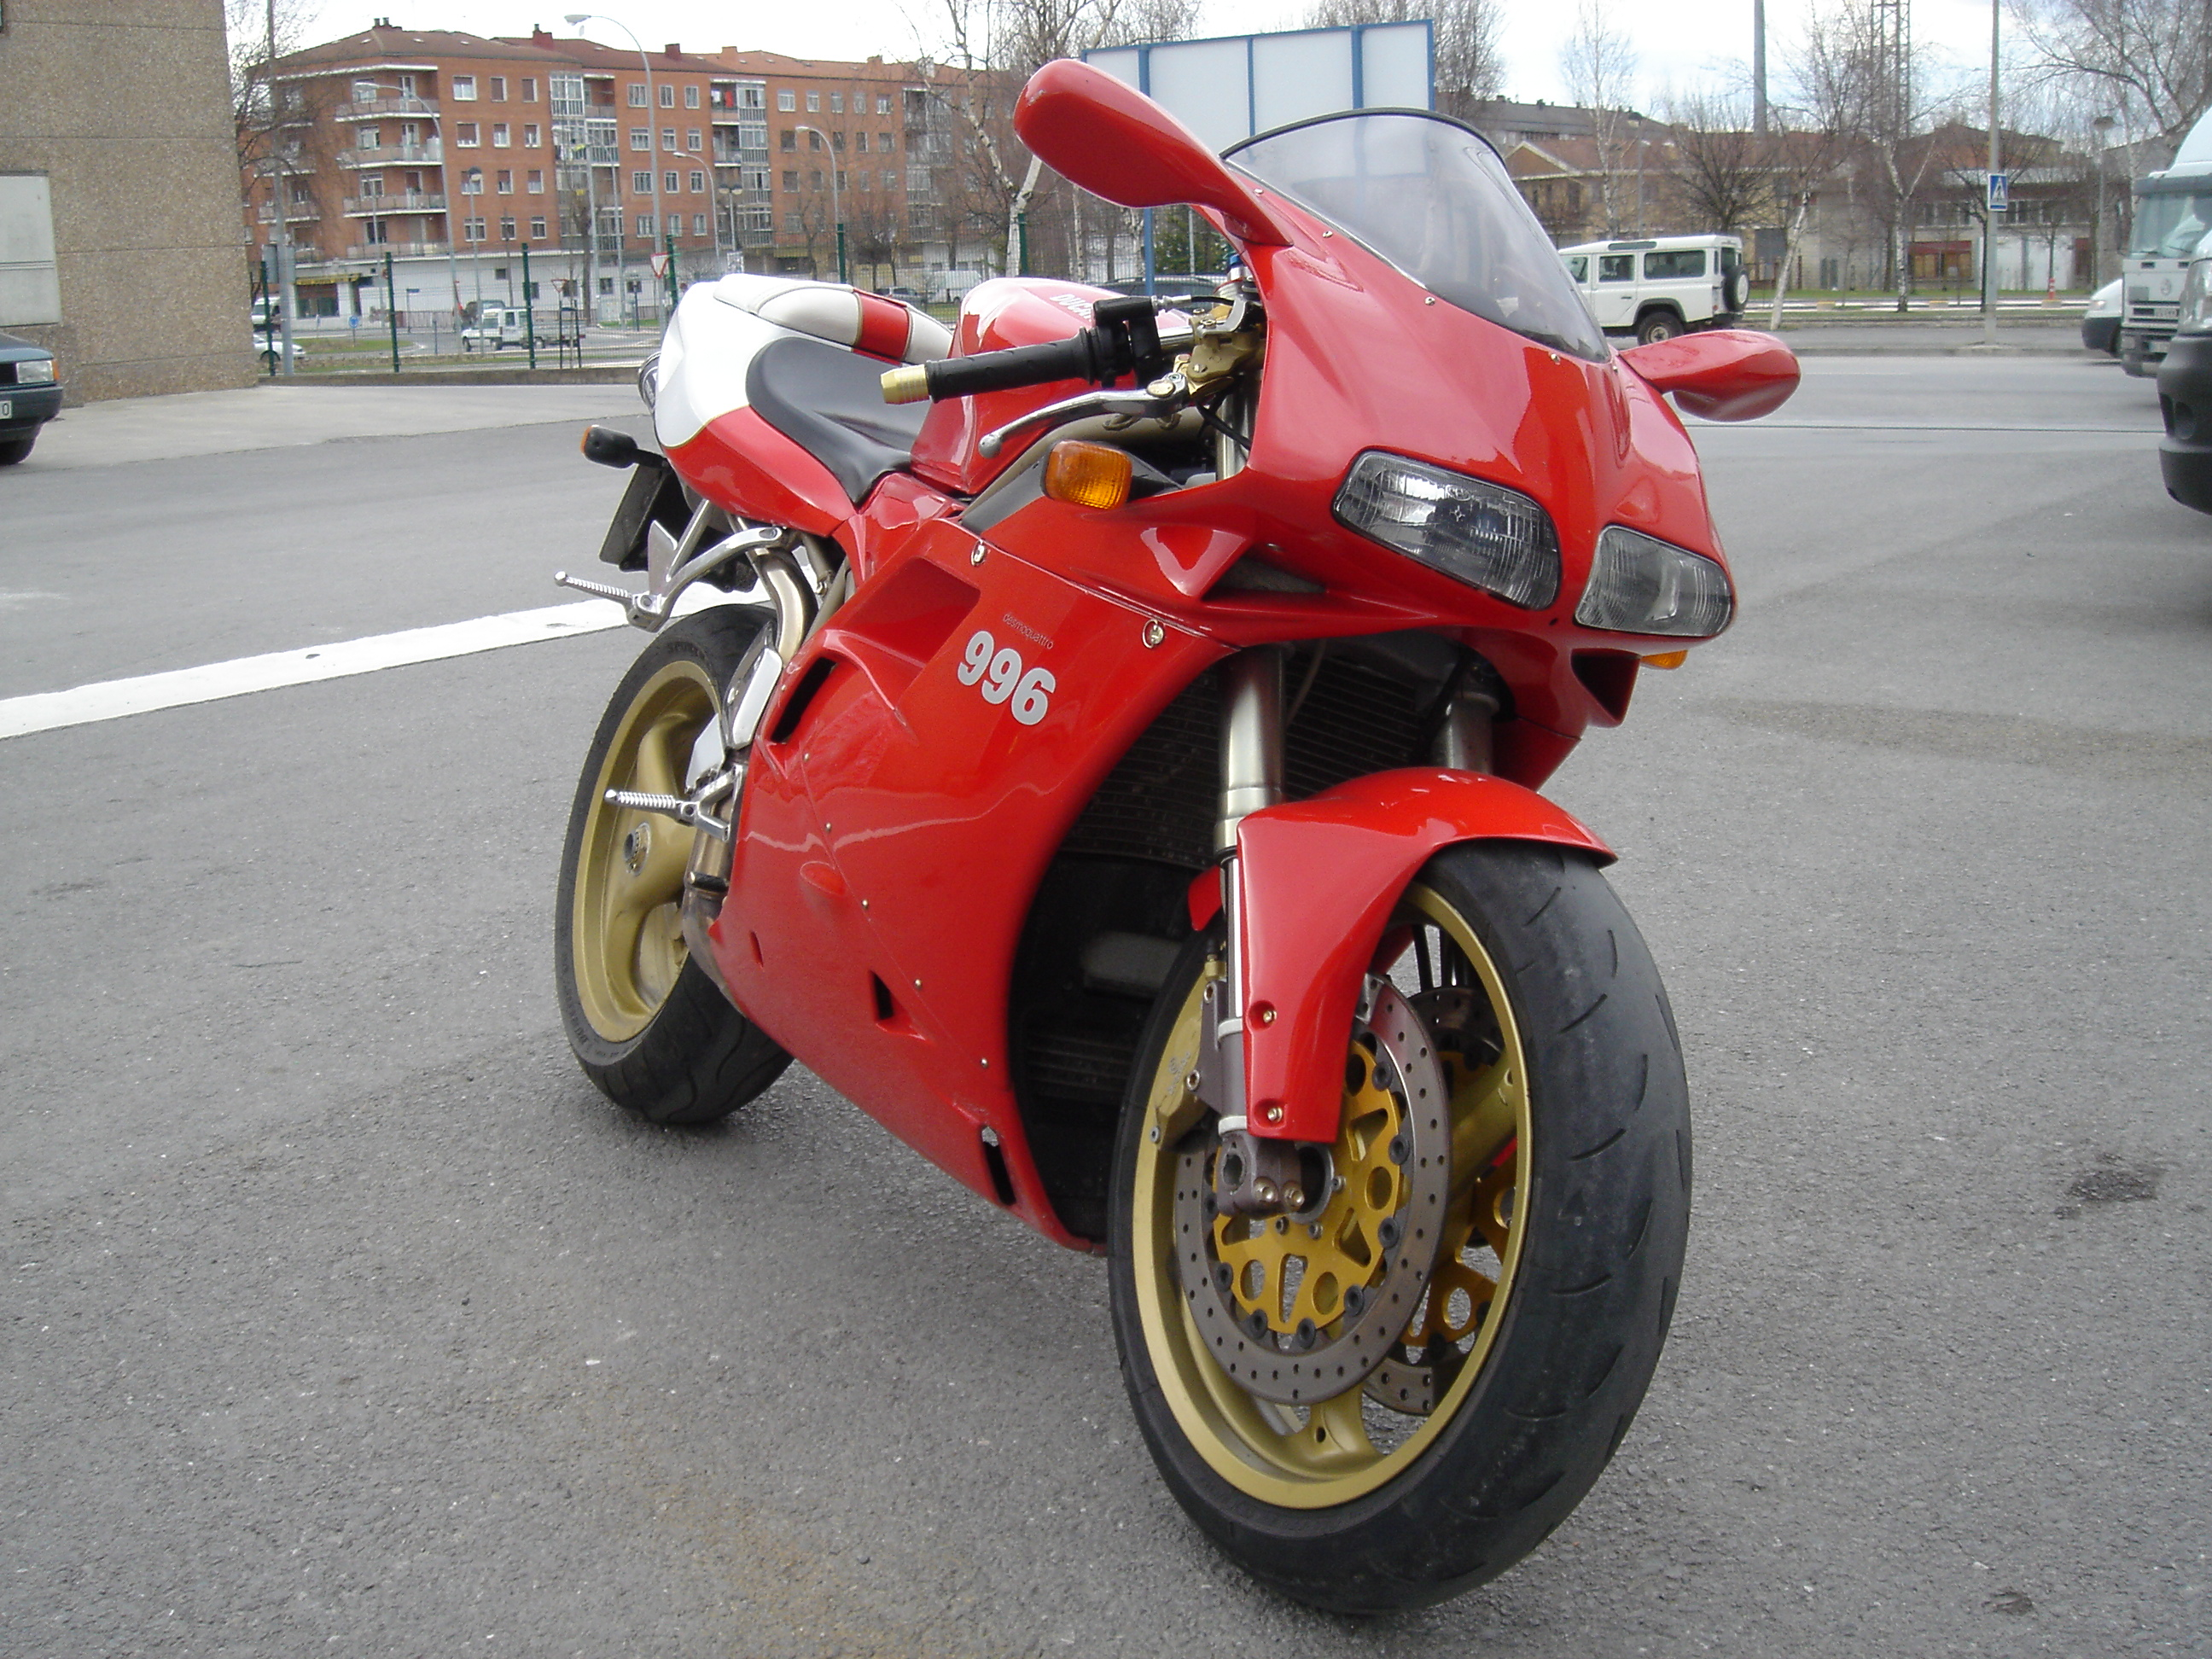 Ducati 996 2001 wallpapers #150631